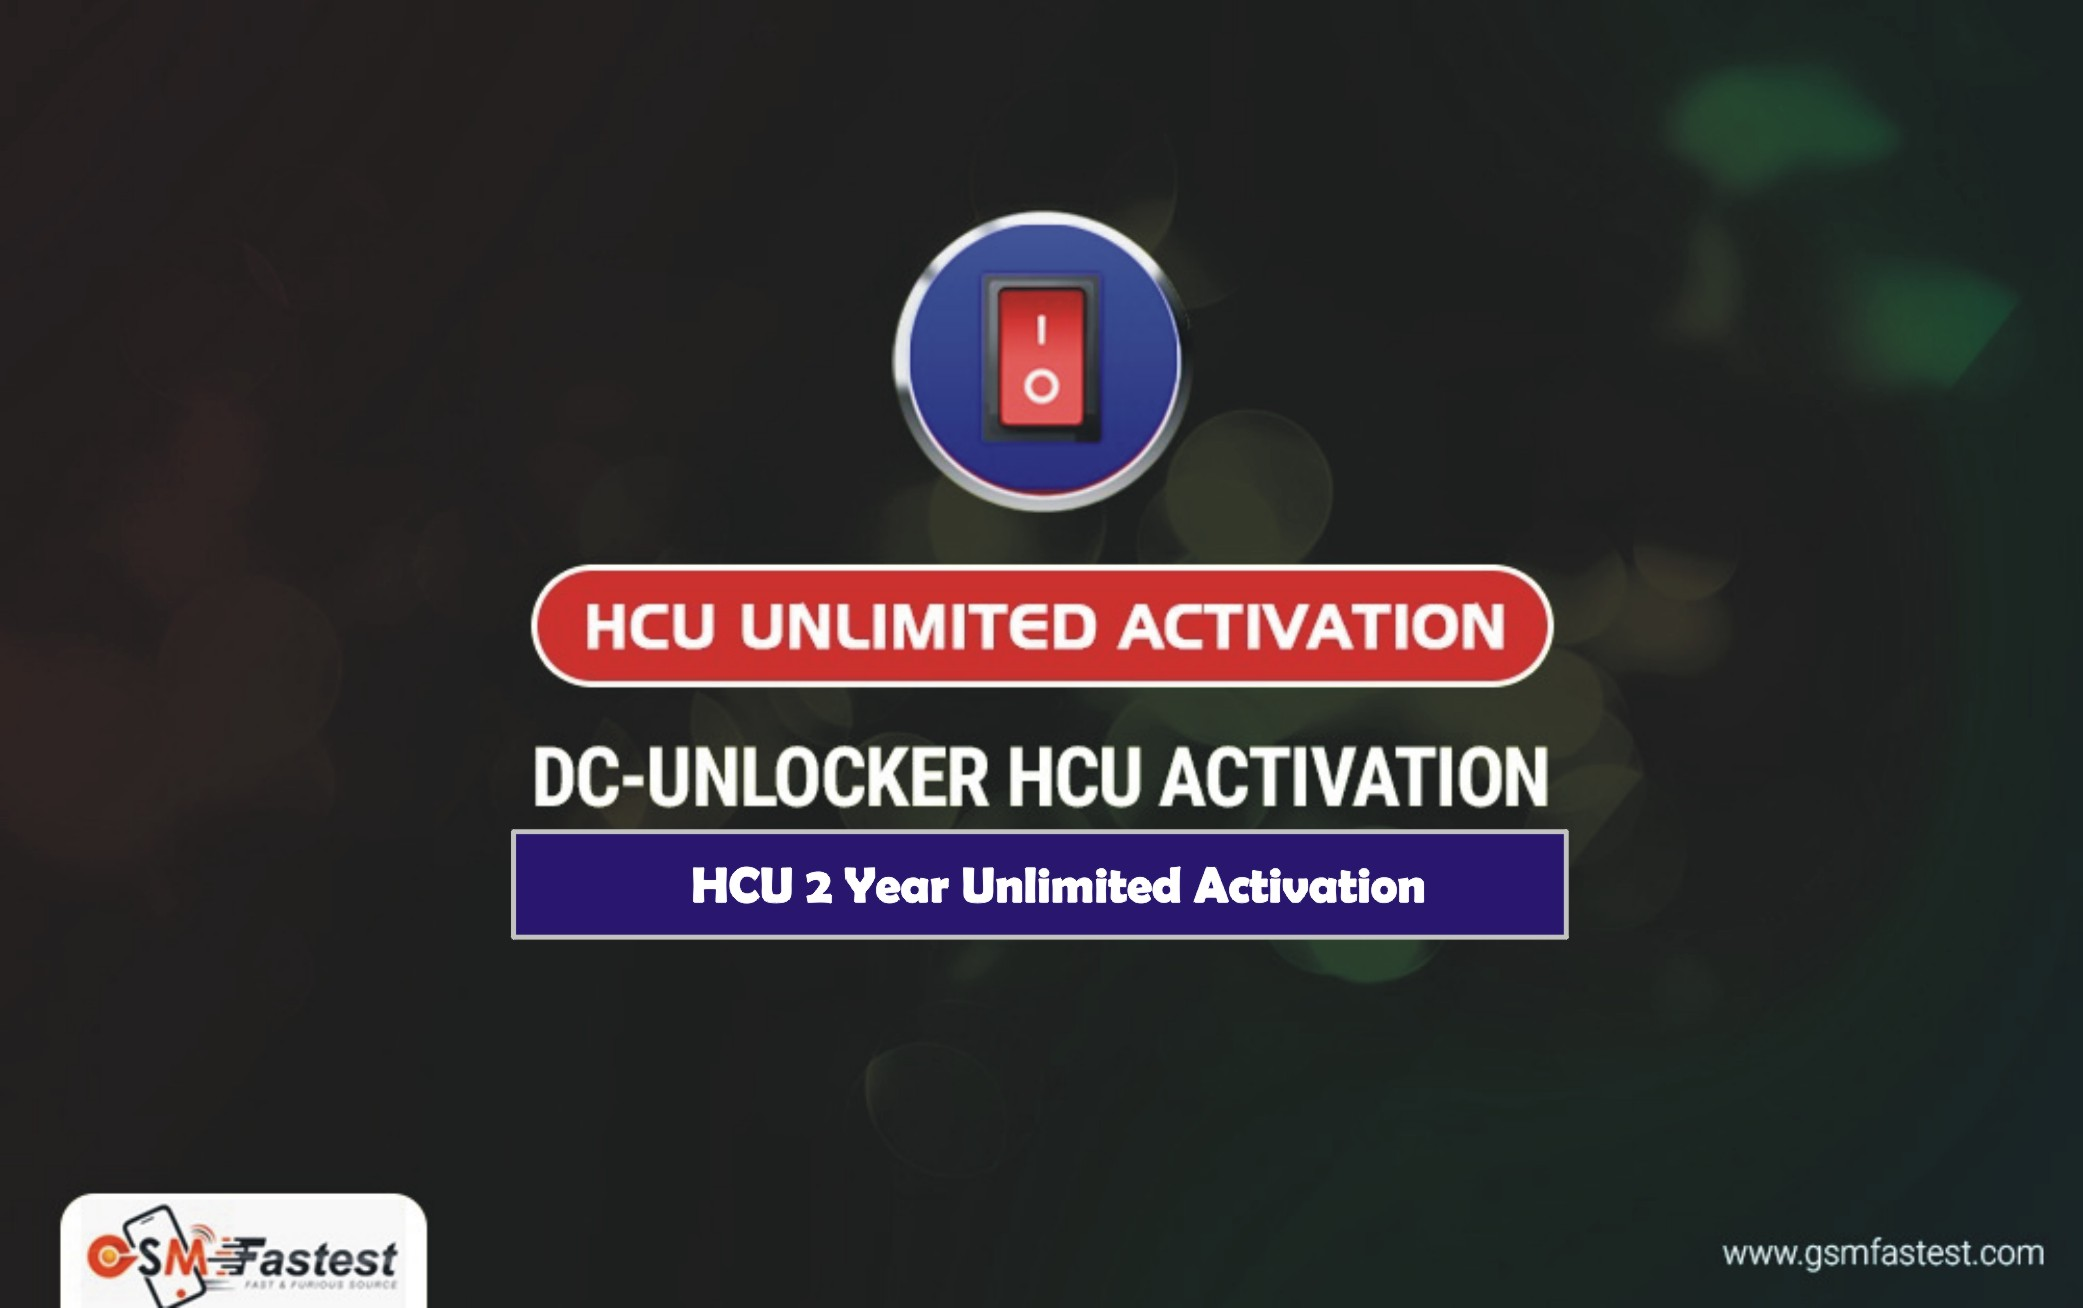 HCU Unlimited Activation For 2 Year